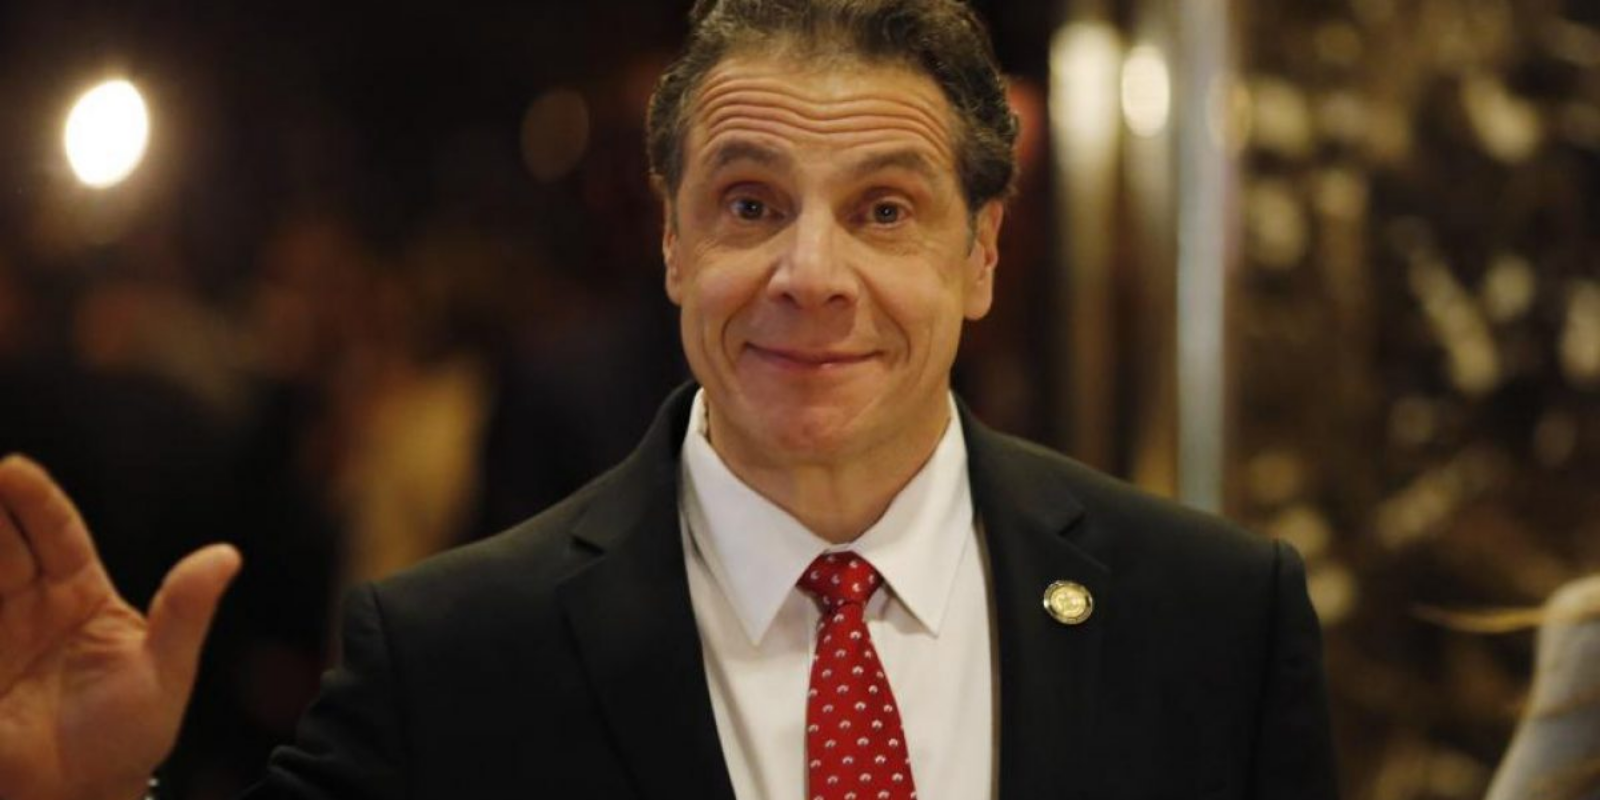 WATCH: Governor Cuomo defends decision to attend football game after getting blasted for hypocrisy